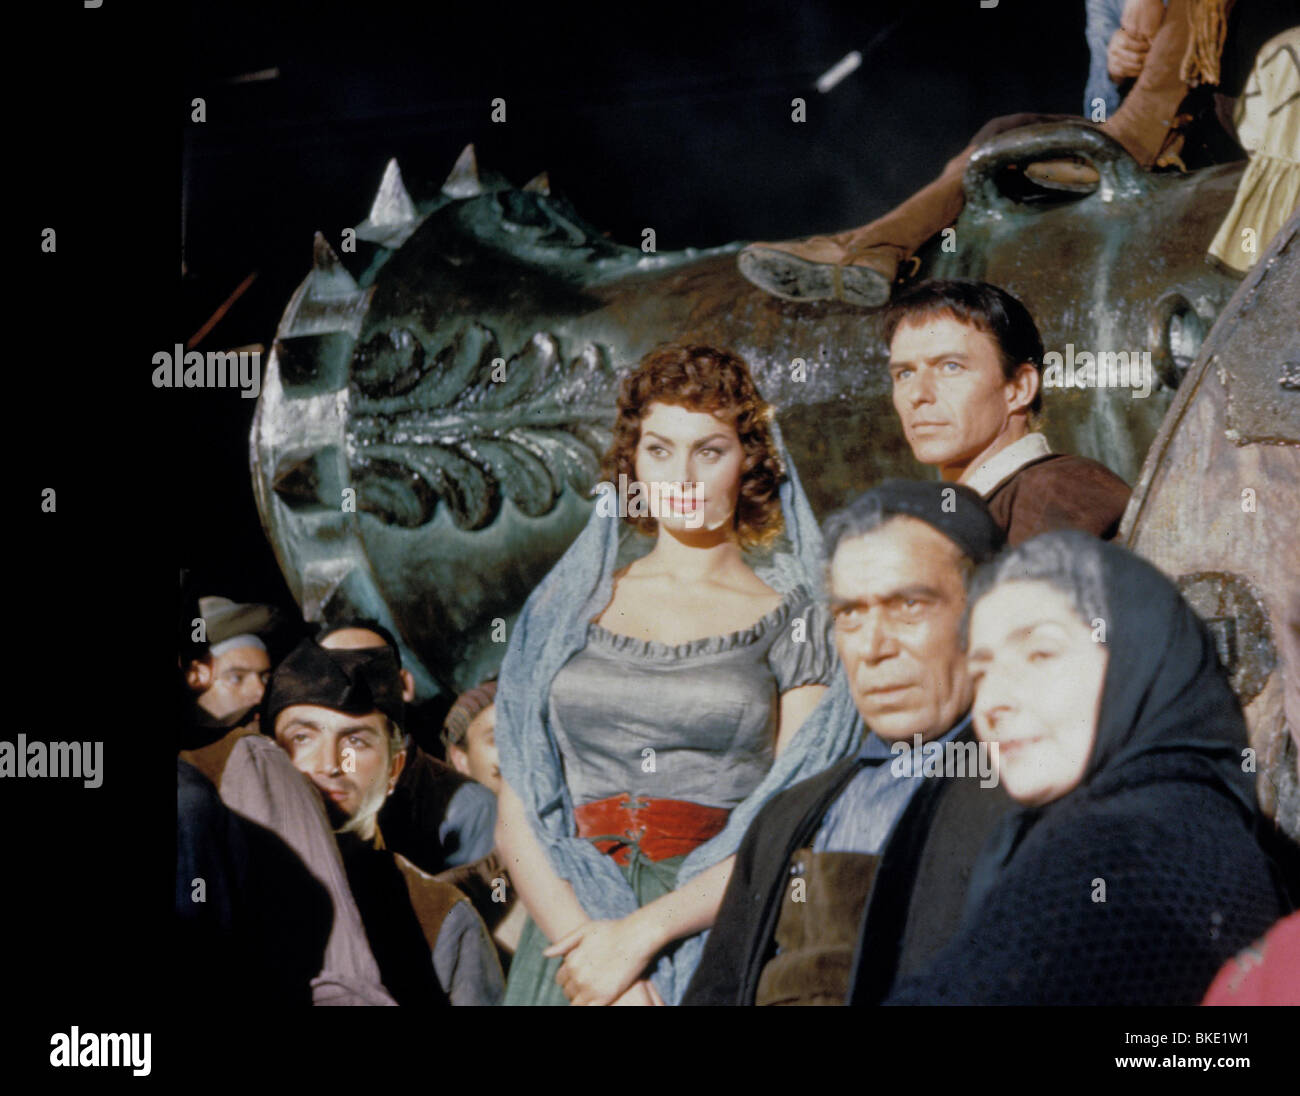 THE PRIDE AND THE PASSION (1957) SOPHIA LOREN, FRANK SINATRA PRPS 021 - Stock Image